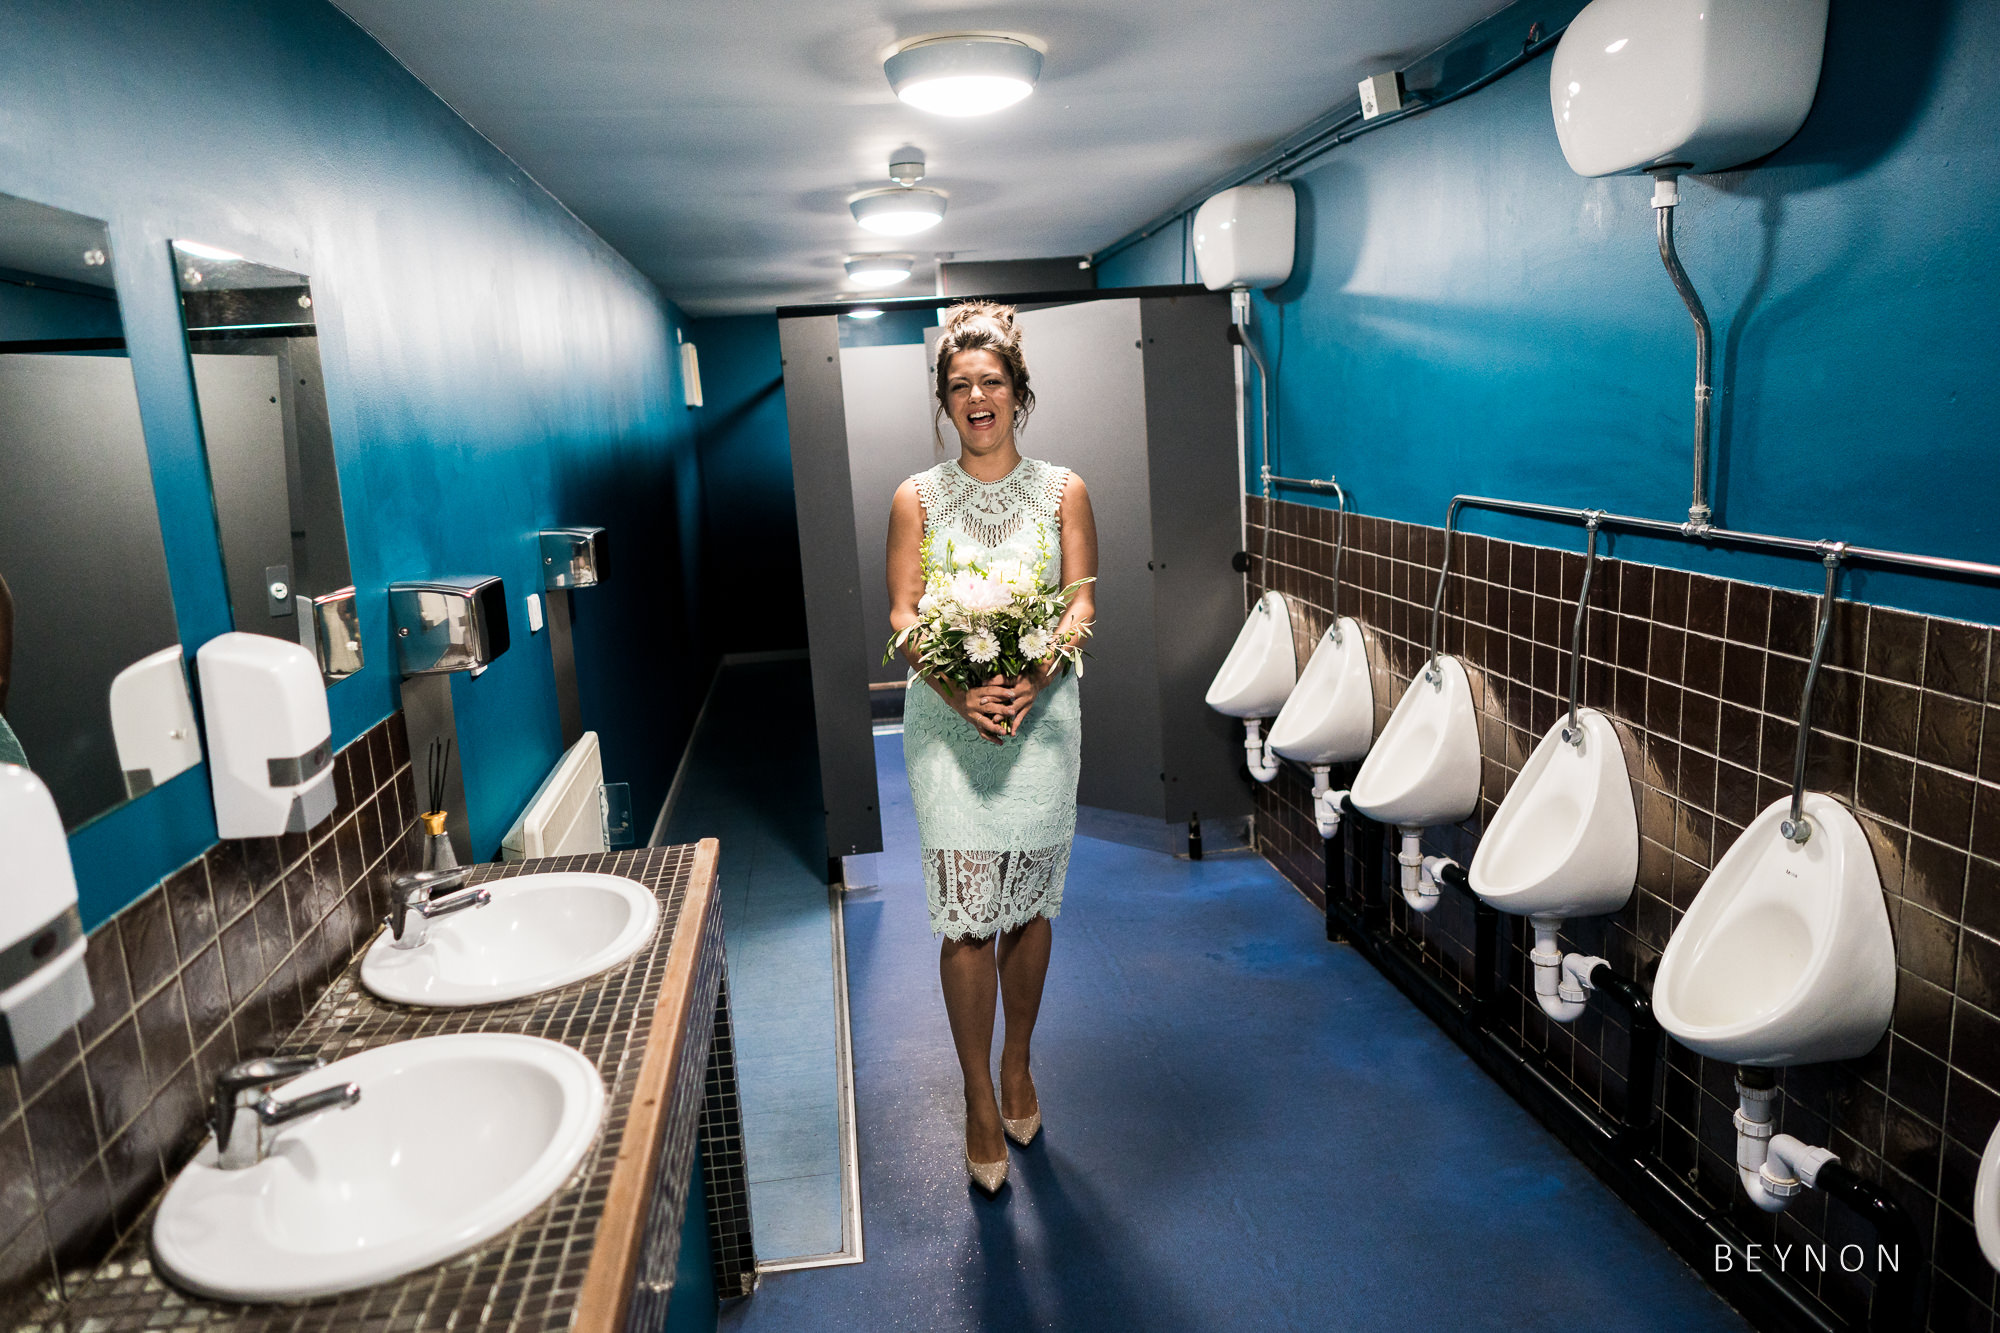 Bridesmaid practices her walk in the men's toilets